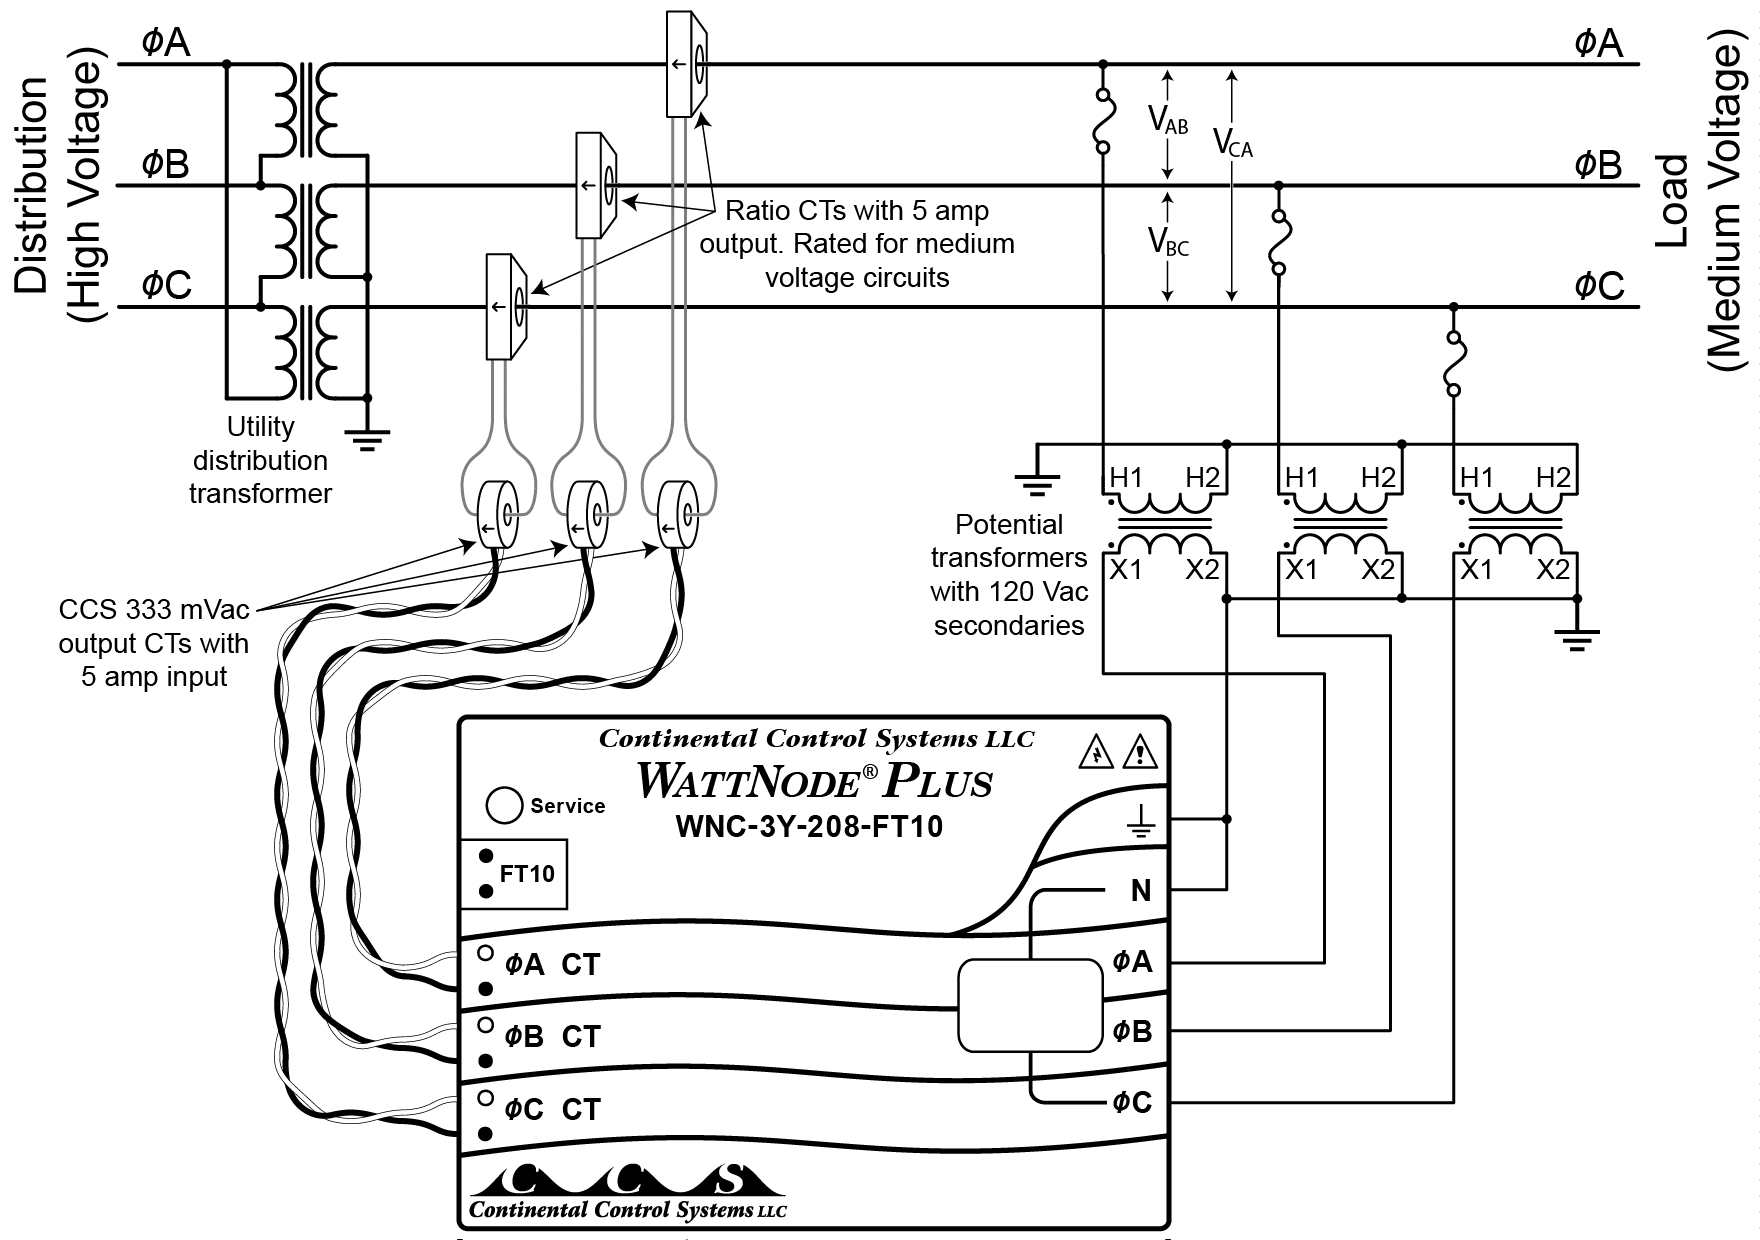 ge kilowatt hour meter wiring diagram 2000 gmc sierra stereo using potential transformers continental control systems llc figure 7 monitoring a three wire wye circuit without neutral